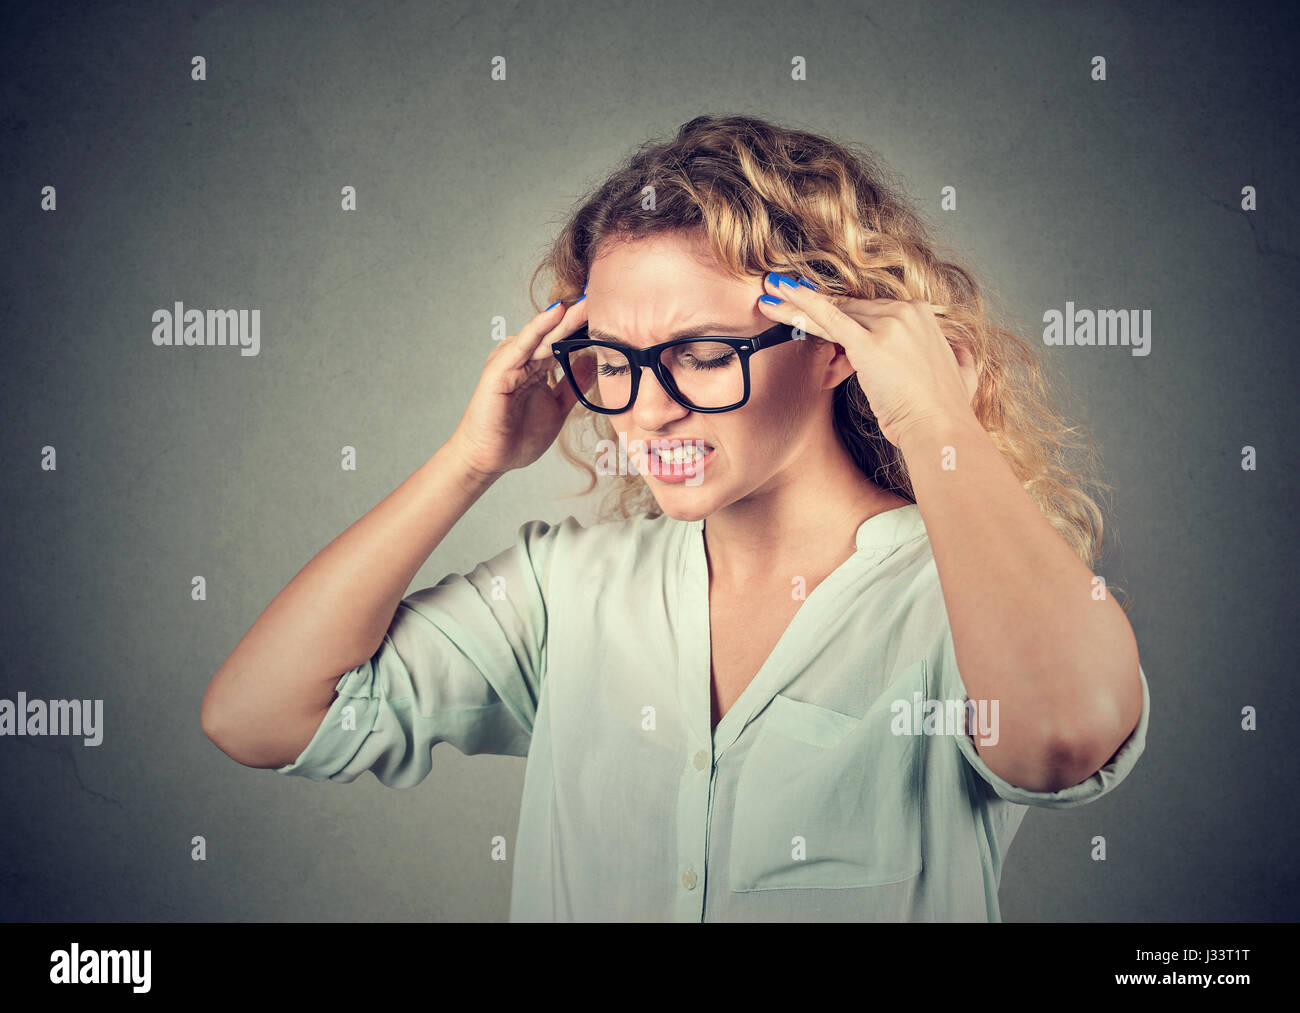 Closeup portrait sad young woman in glasses with worried stressed face expression isolated on gray wall background. - Stock Image